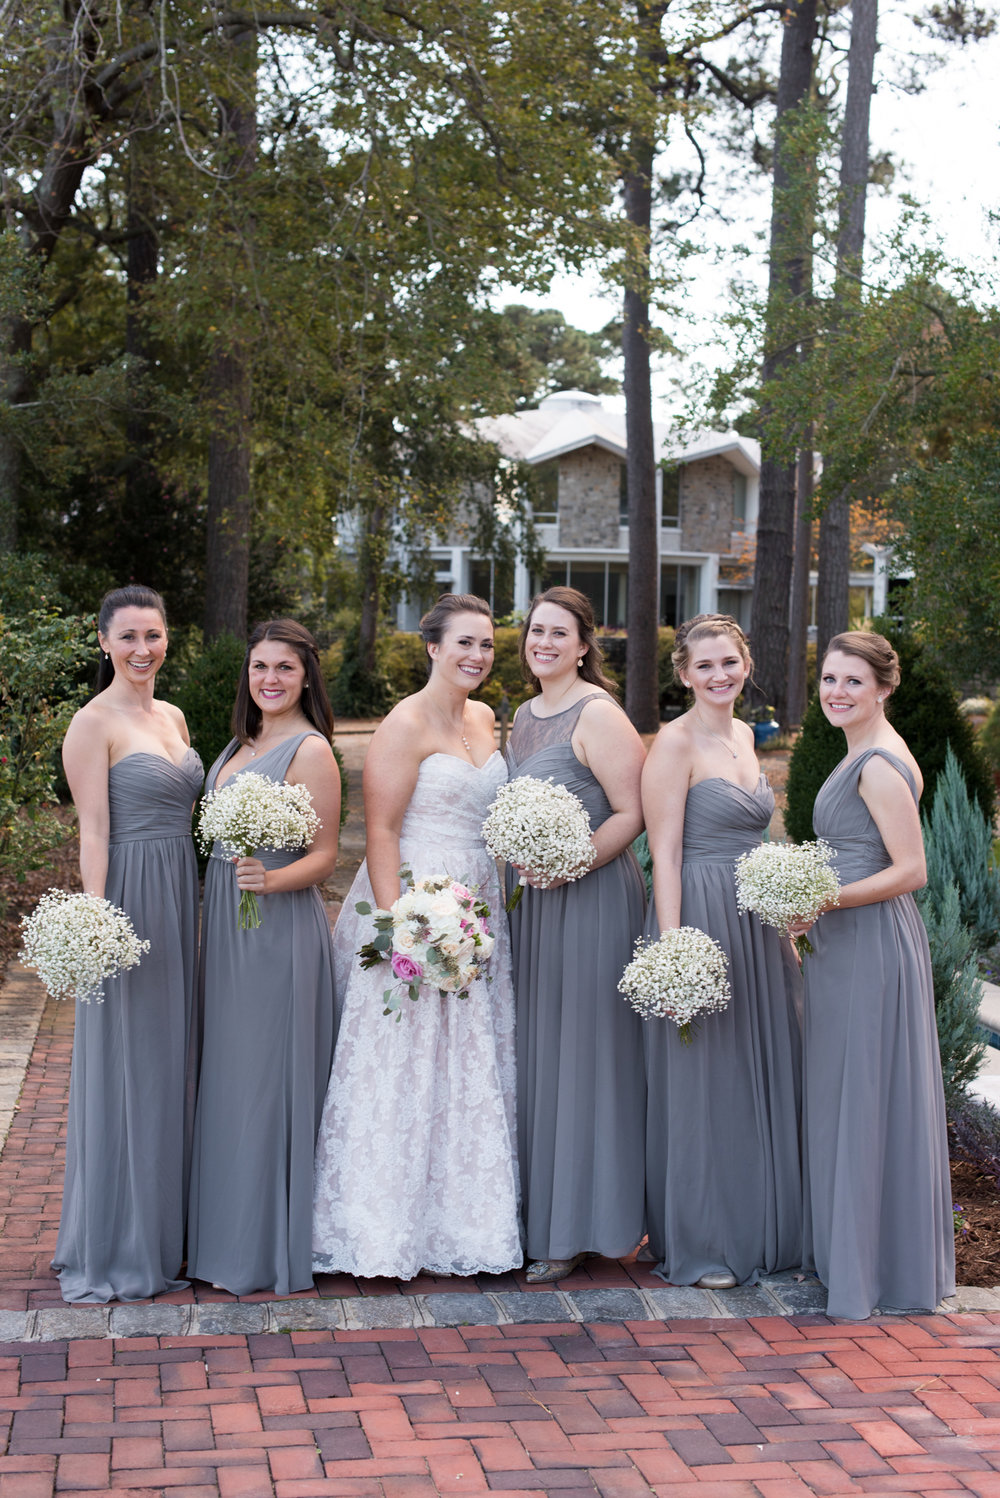 Charcoal Bridesmaid Dresses - Travel Themed Wedding - Caitlin Gerres Photography